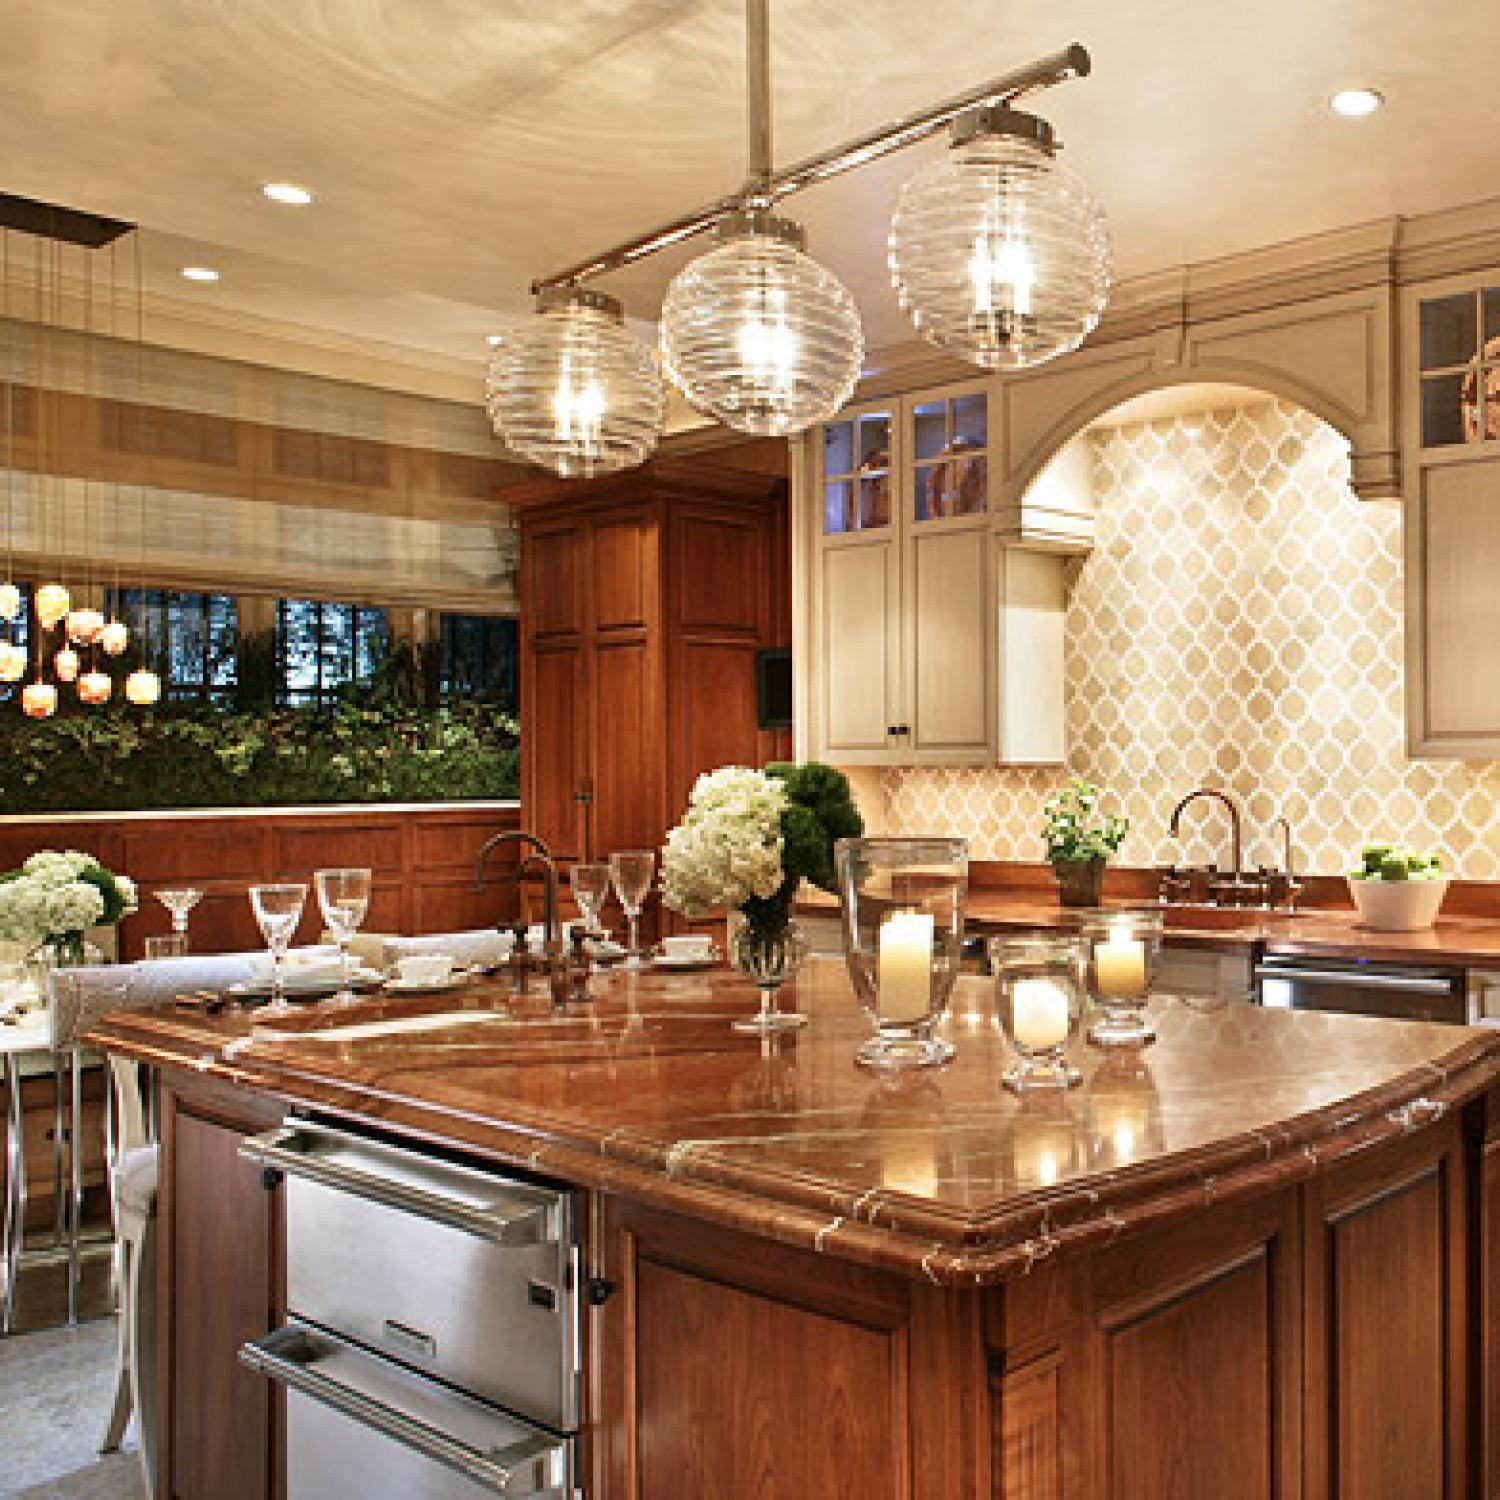 Home Decor Kitchen Ideas: Stylish Islands For Traditional Kitchens